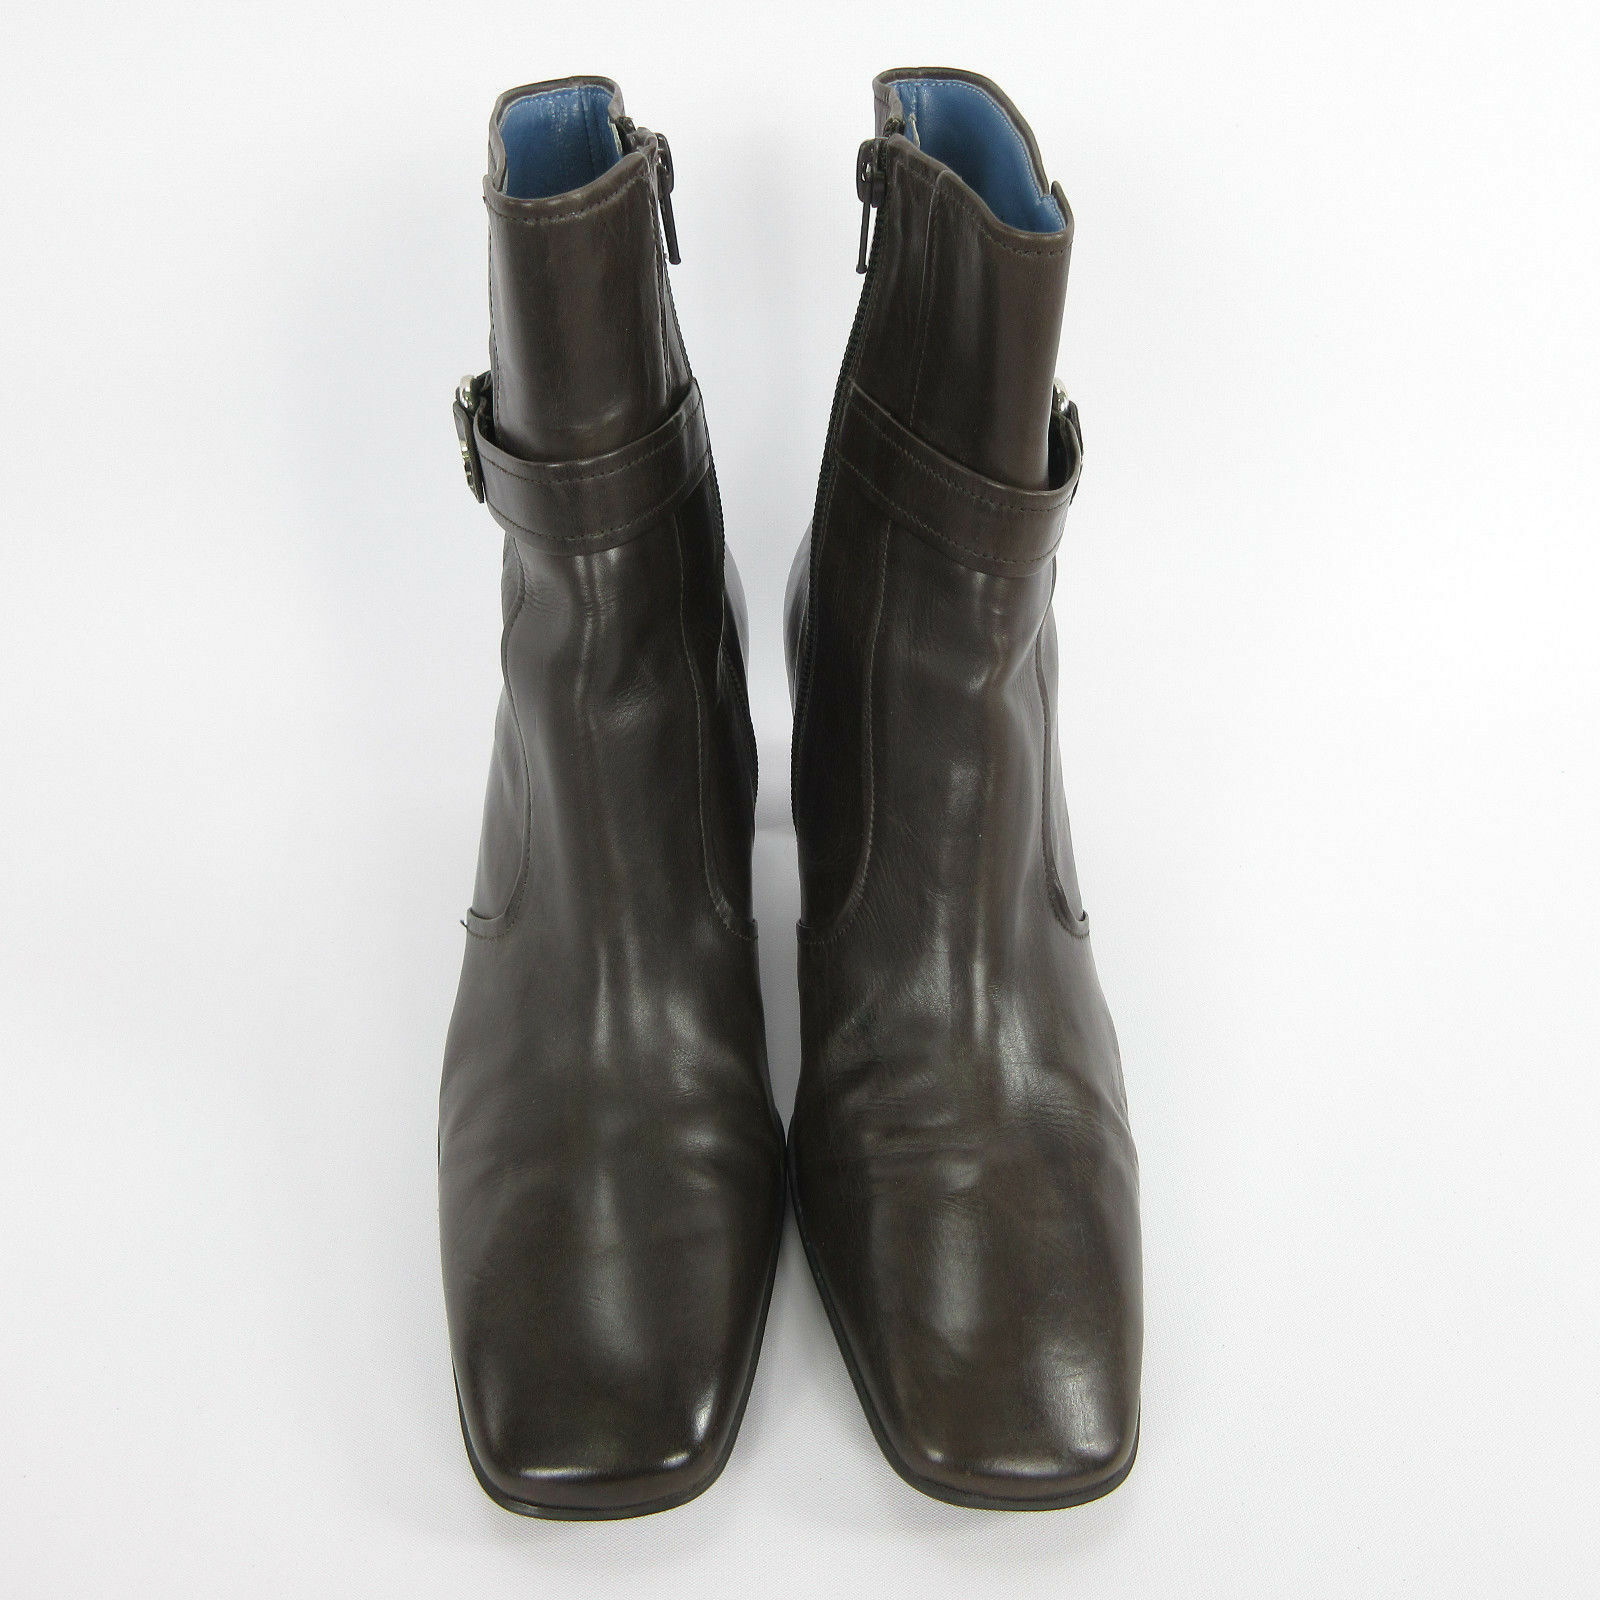 Cole Haan Womens Ankle Boots 9.5 Brown Leather D18066 Square Toe Side Zip D18066 Leather 1b8fac